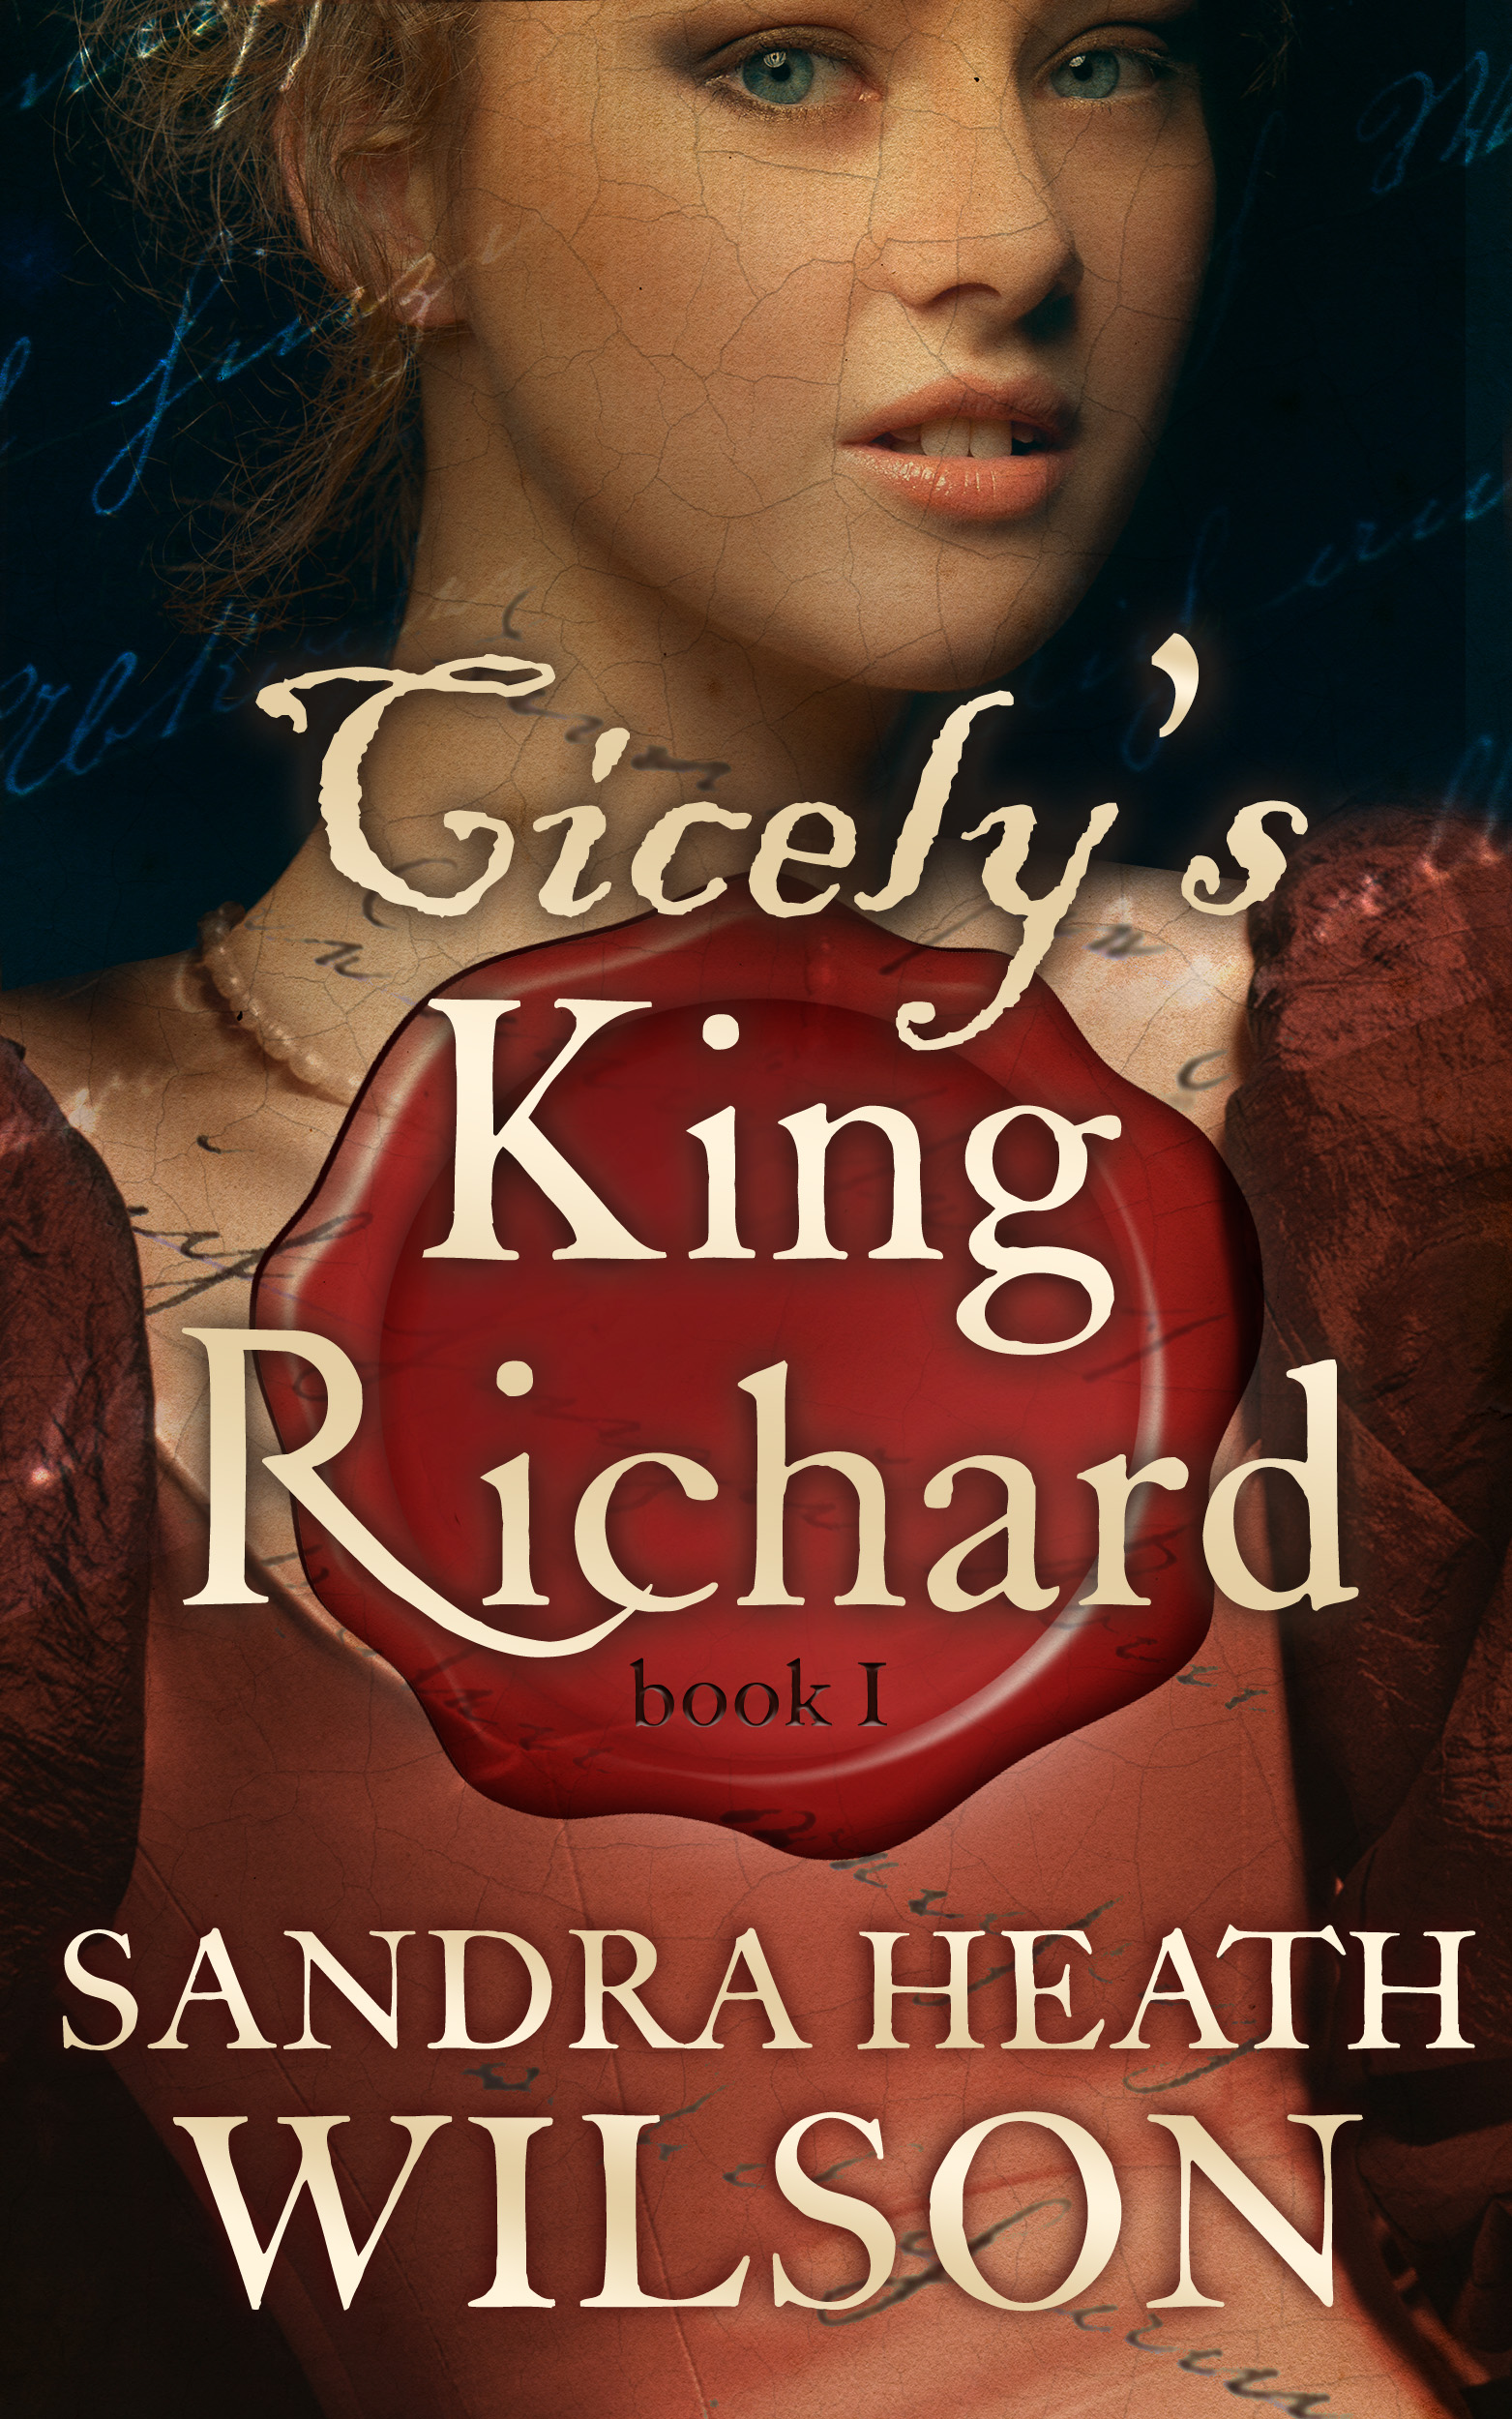 Cicely's King Richard book cover